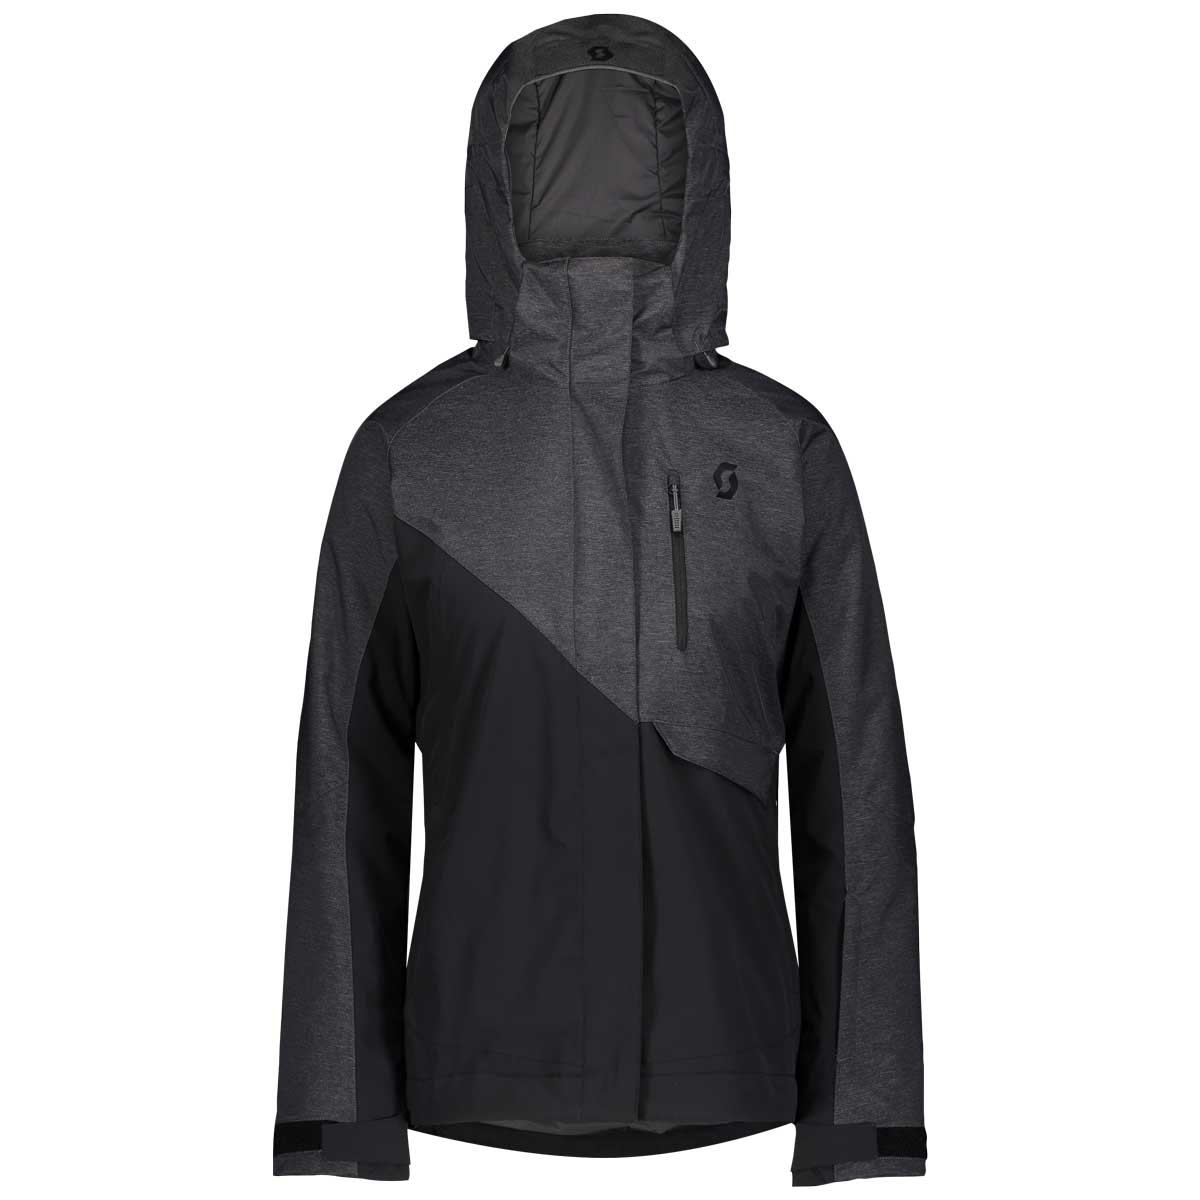 scott women's ultimate dryo 10 jacket in dark grey melange and black